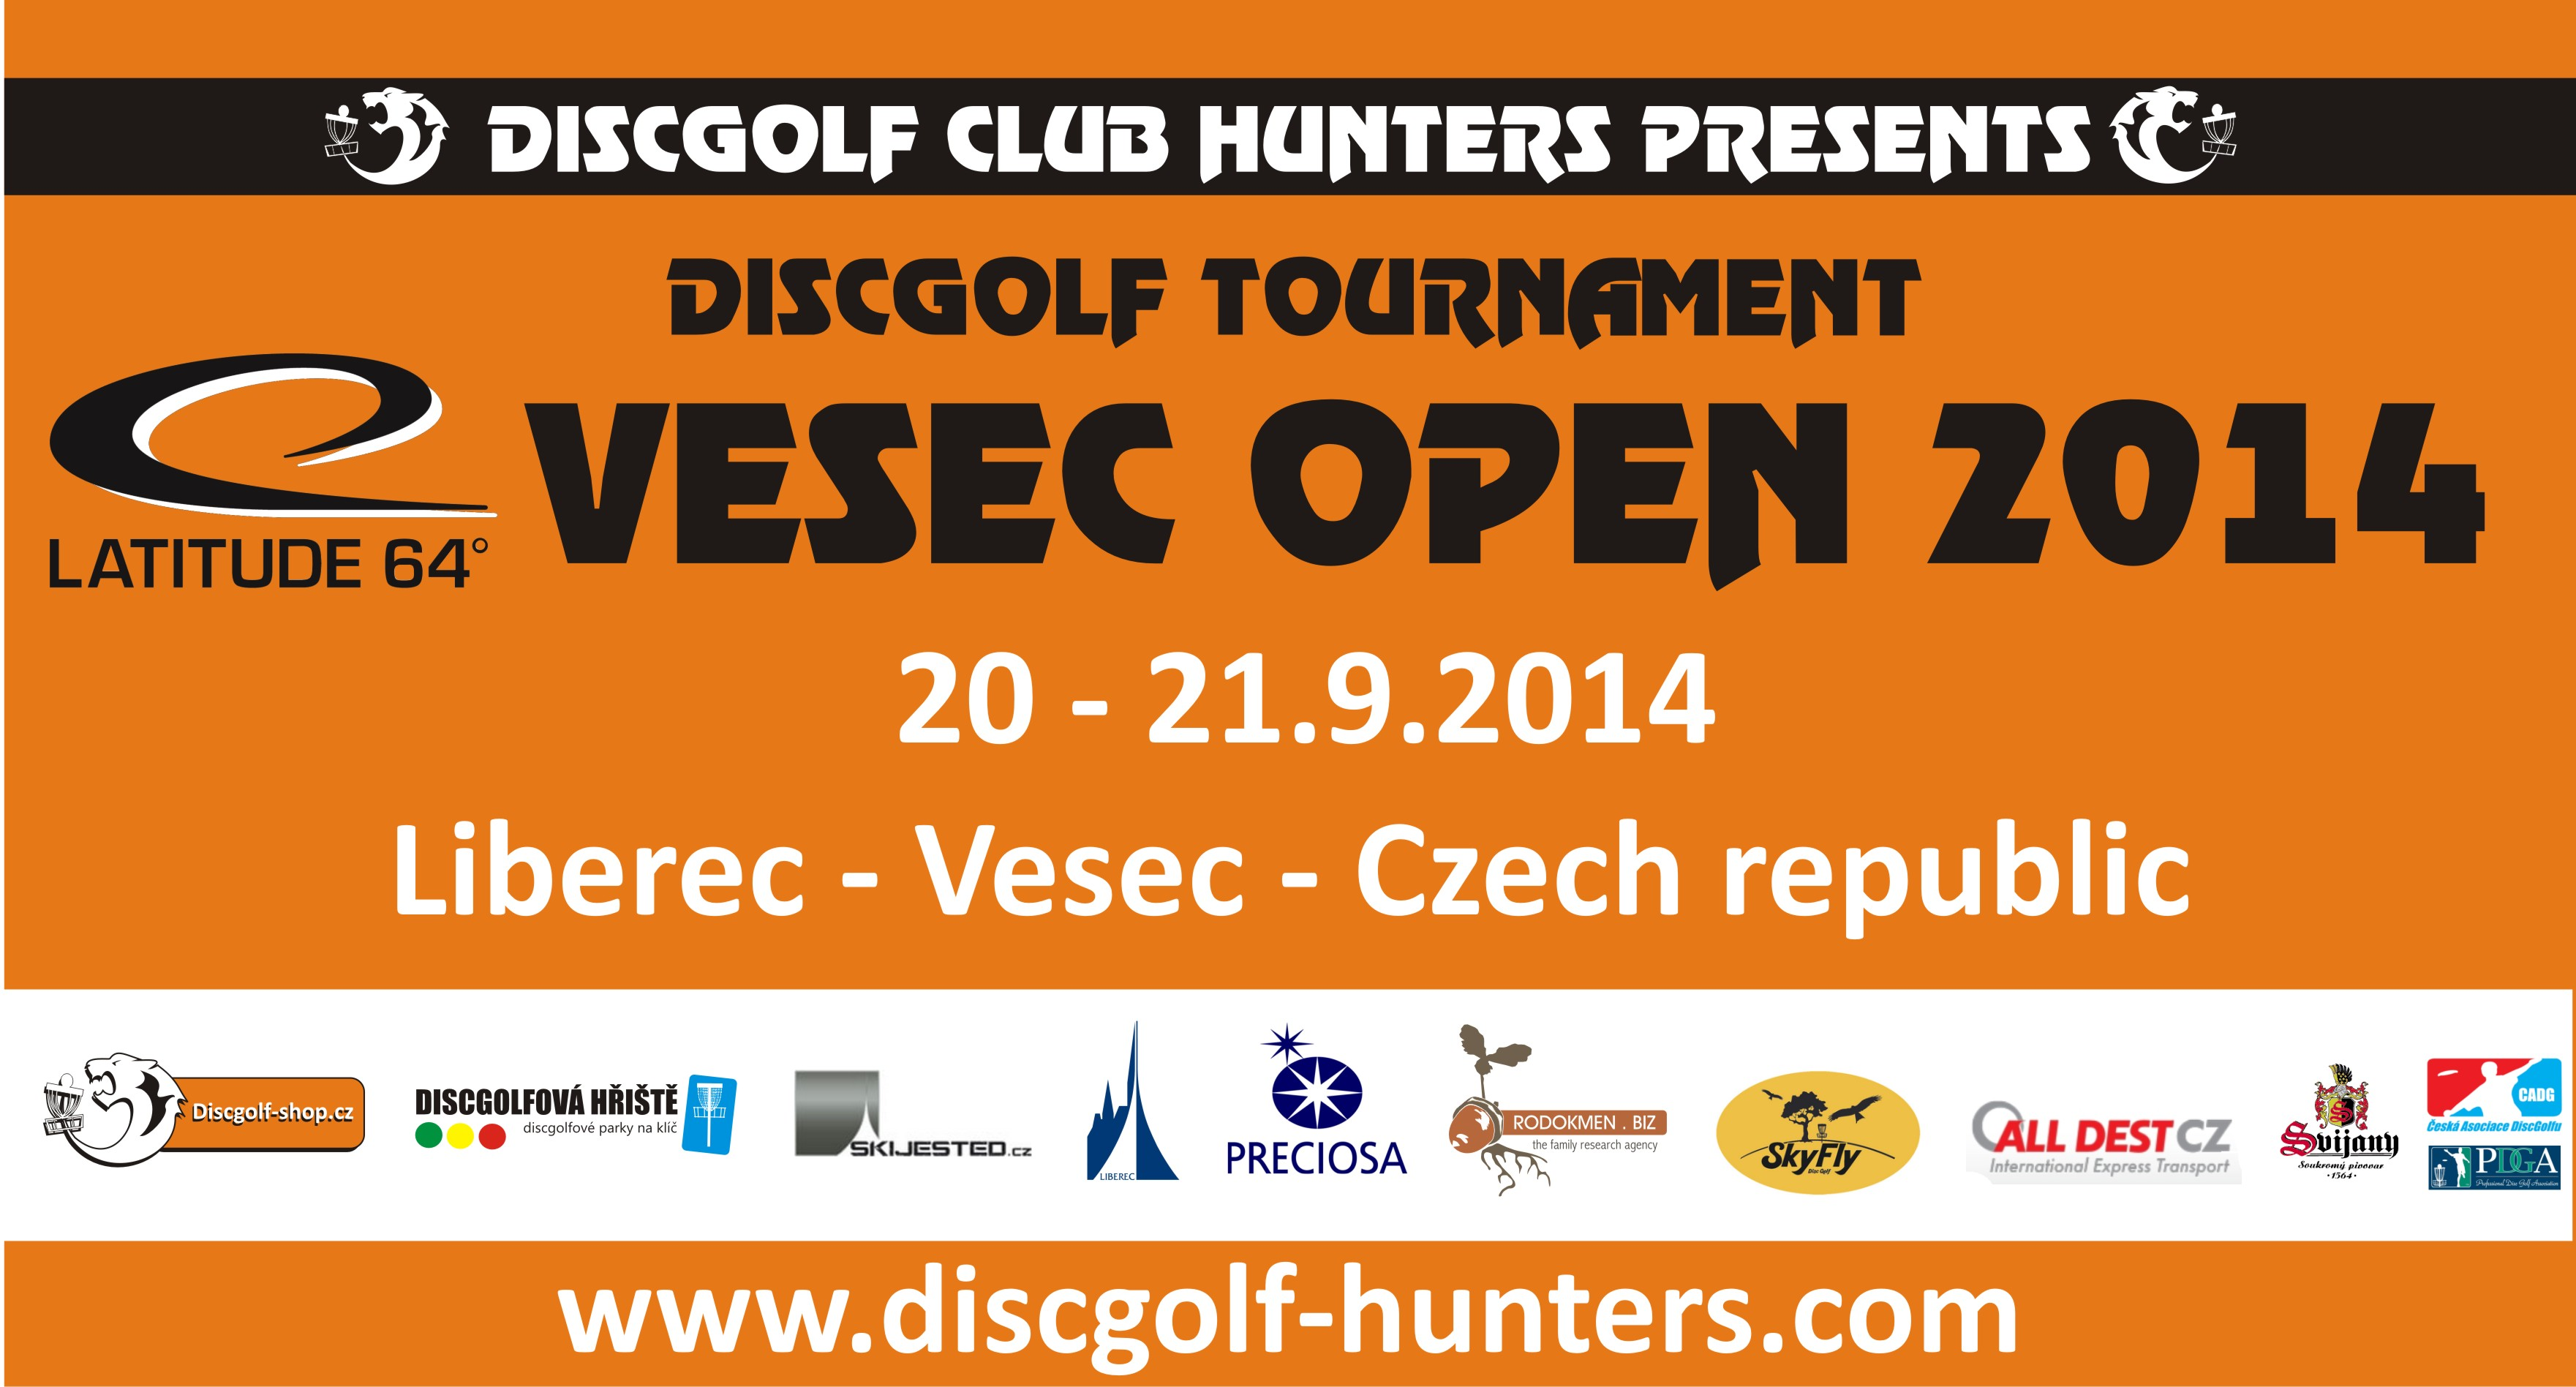 Latitude 64 Vesec Open 2014